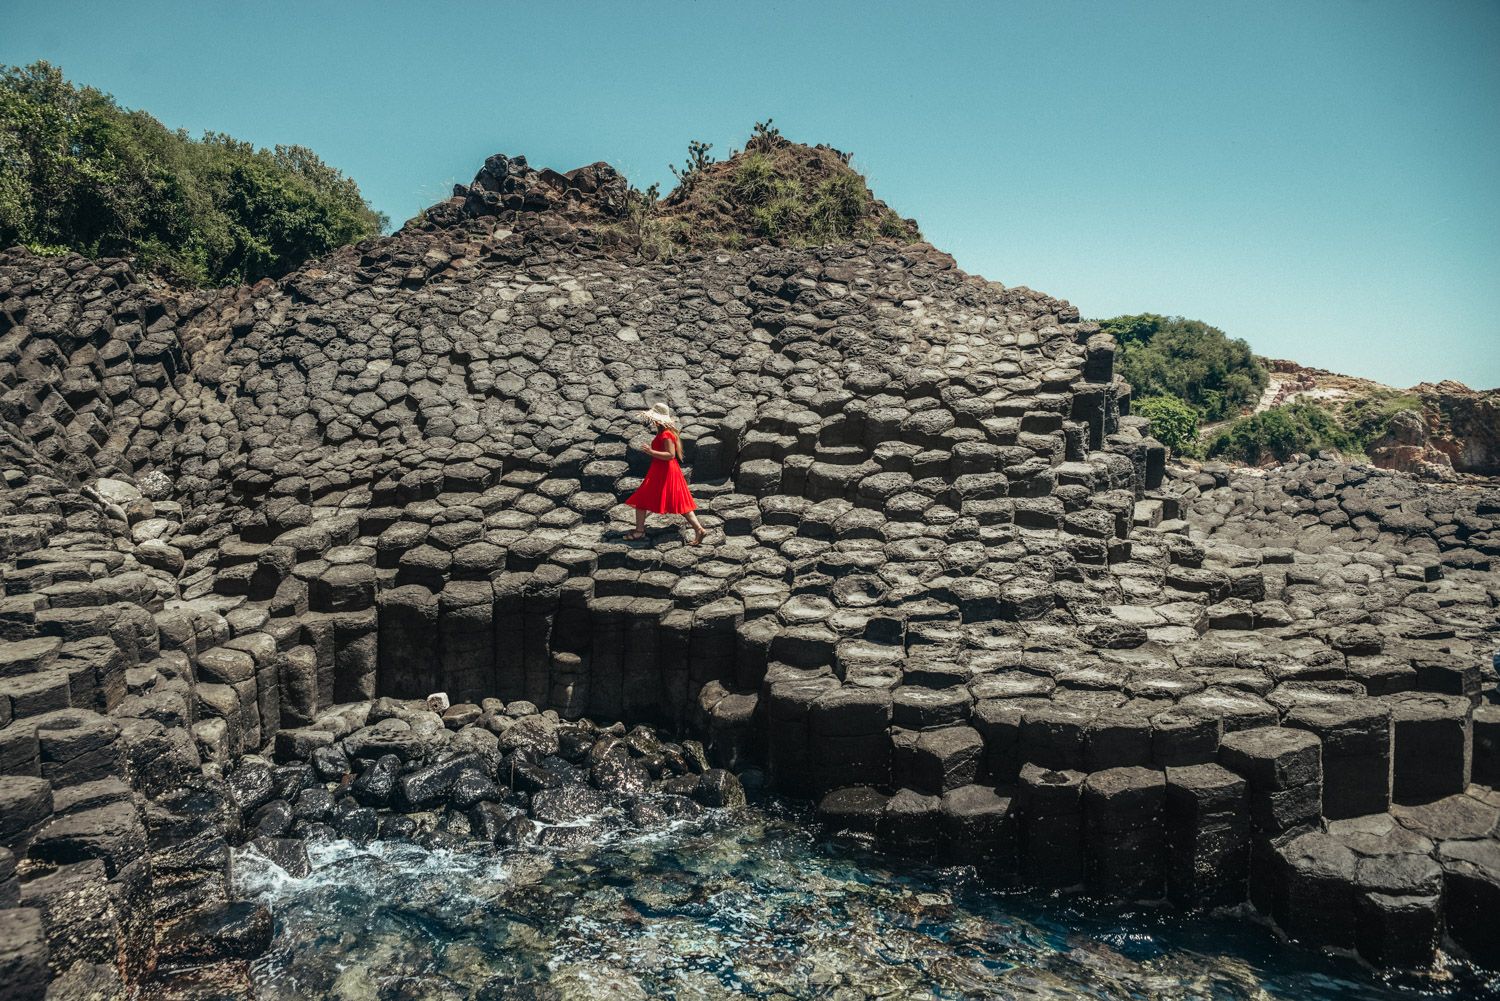 Adaras at Ganh Da Dia in Phu Yen, Vietnam | Girl in Red Dress Walking on basalt rock columns